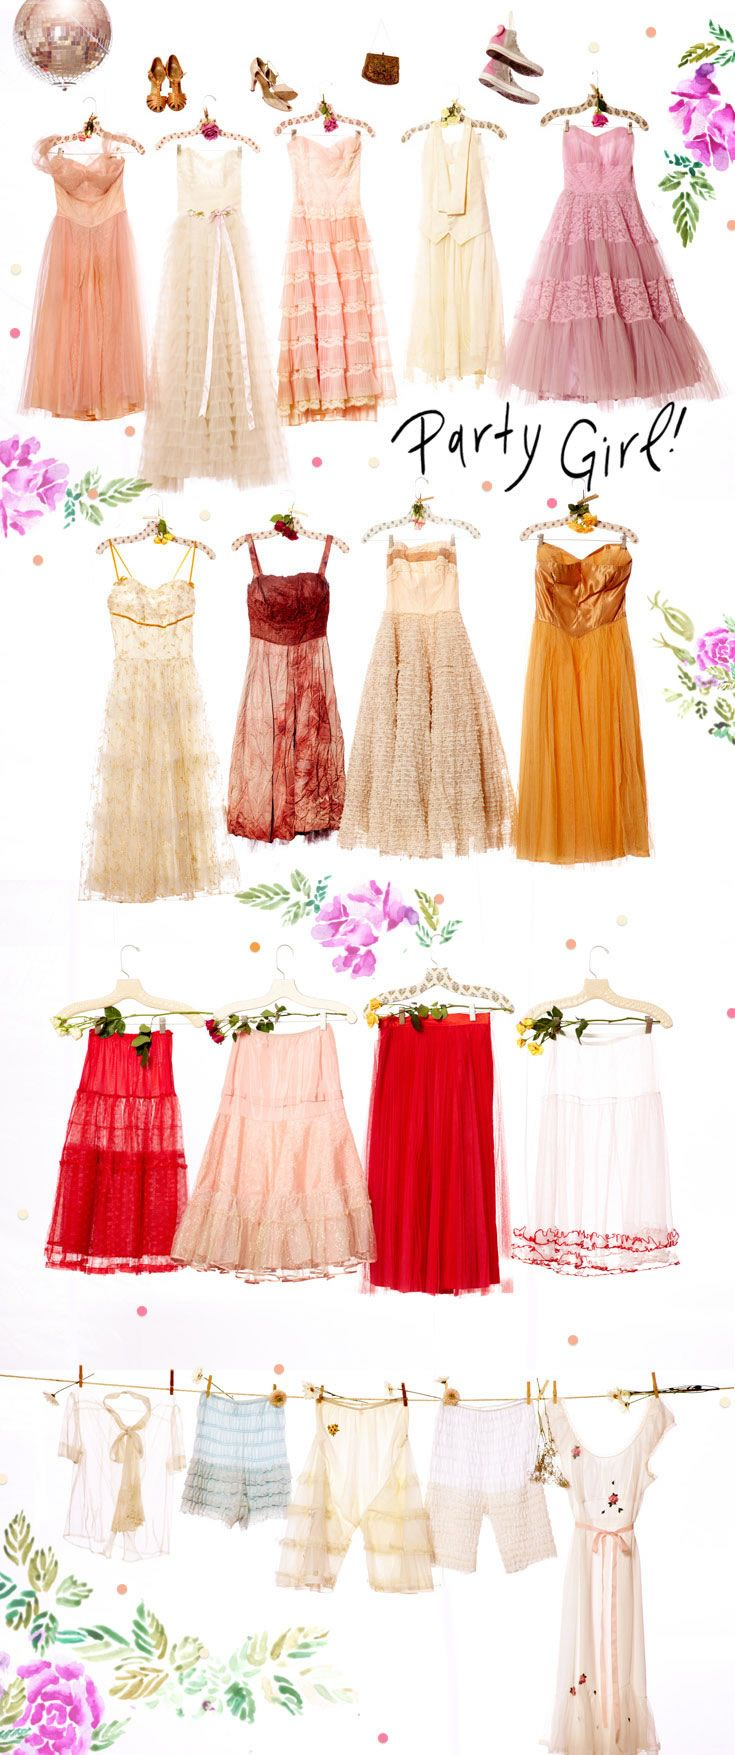 pretty pretty pretty I would love to twirl in some of these dresses!